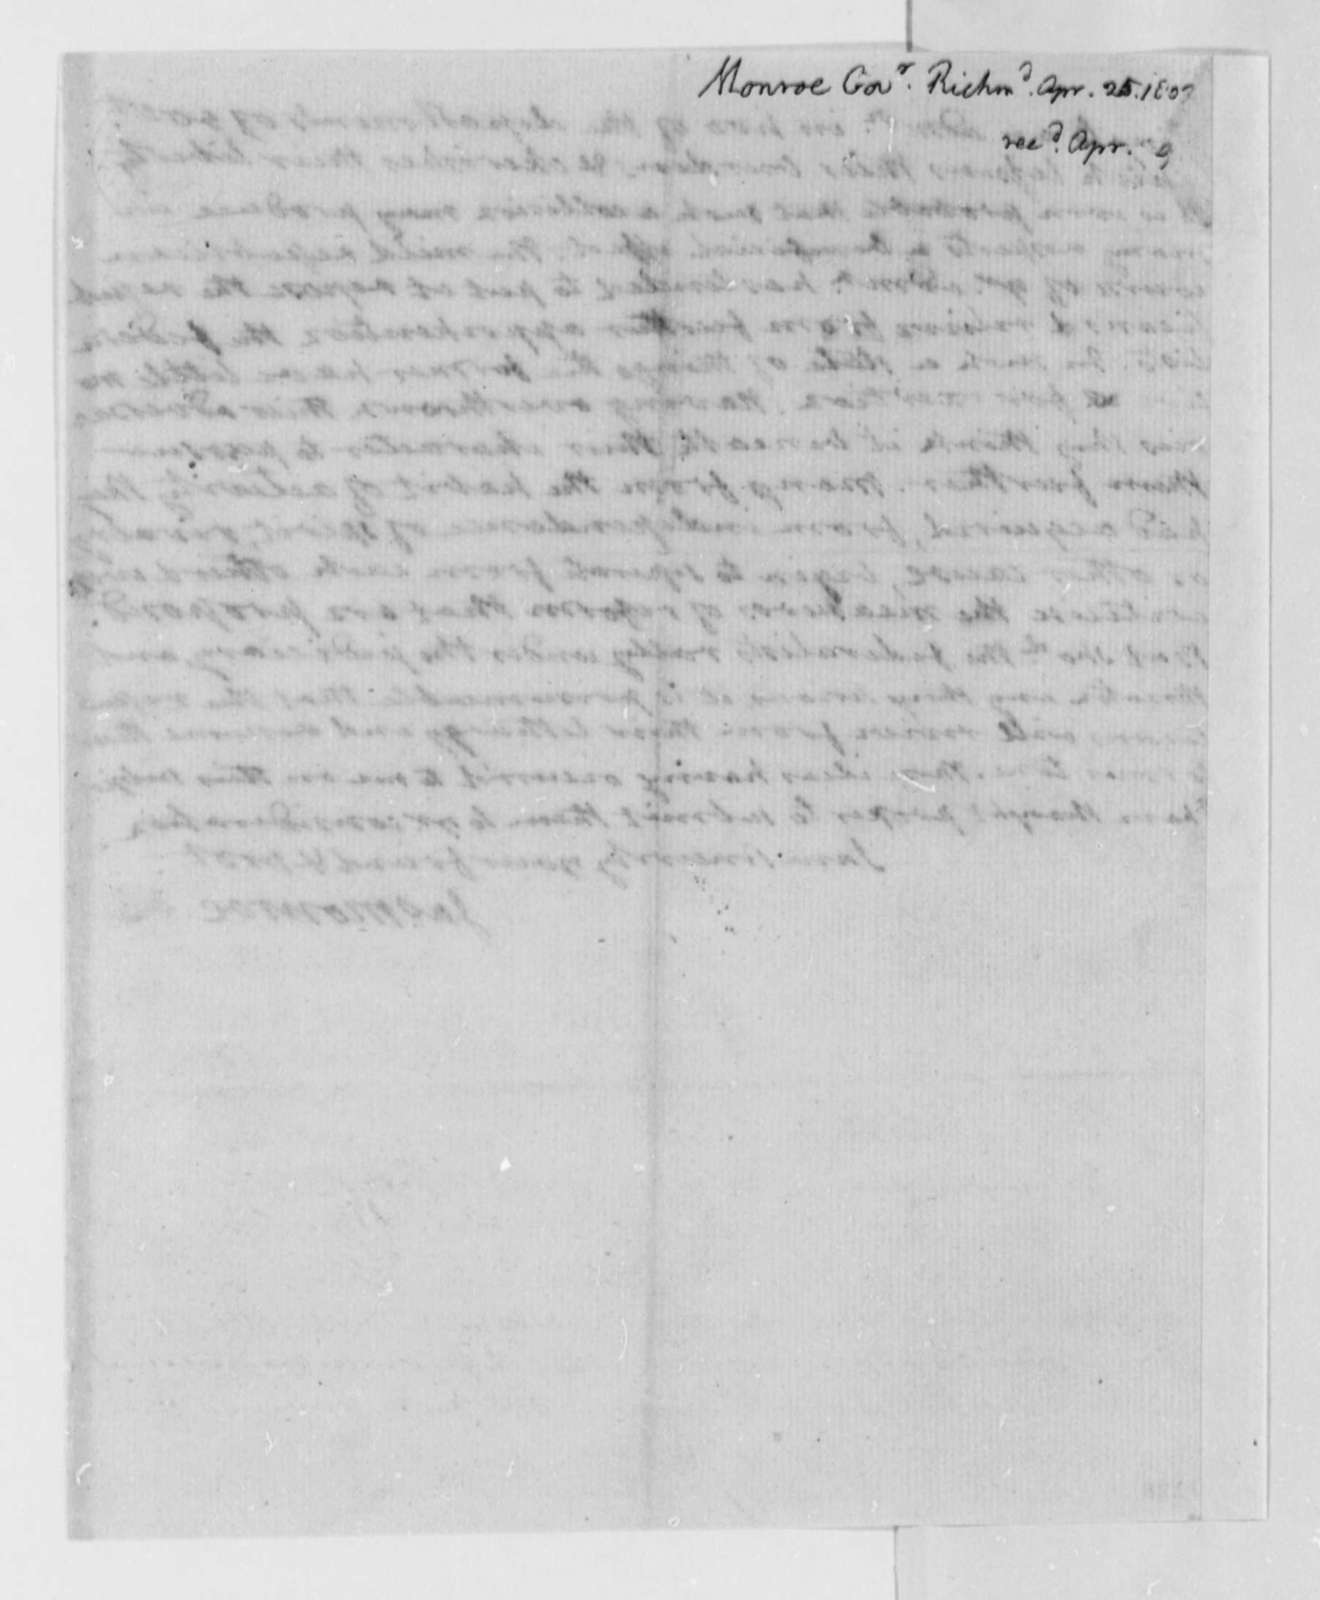 James Monroe to Thomas Jefferson, April 25, 1802